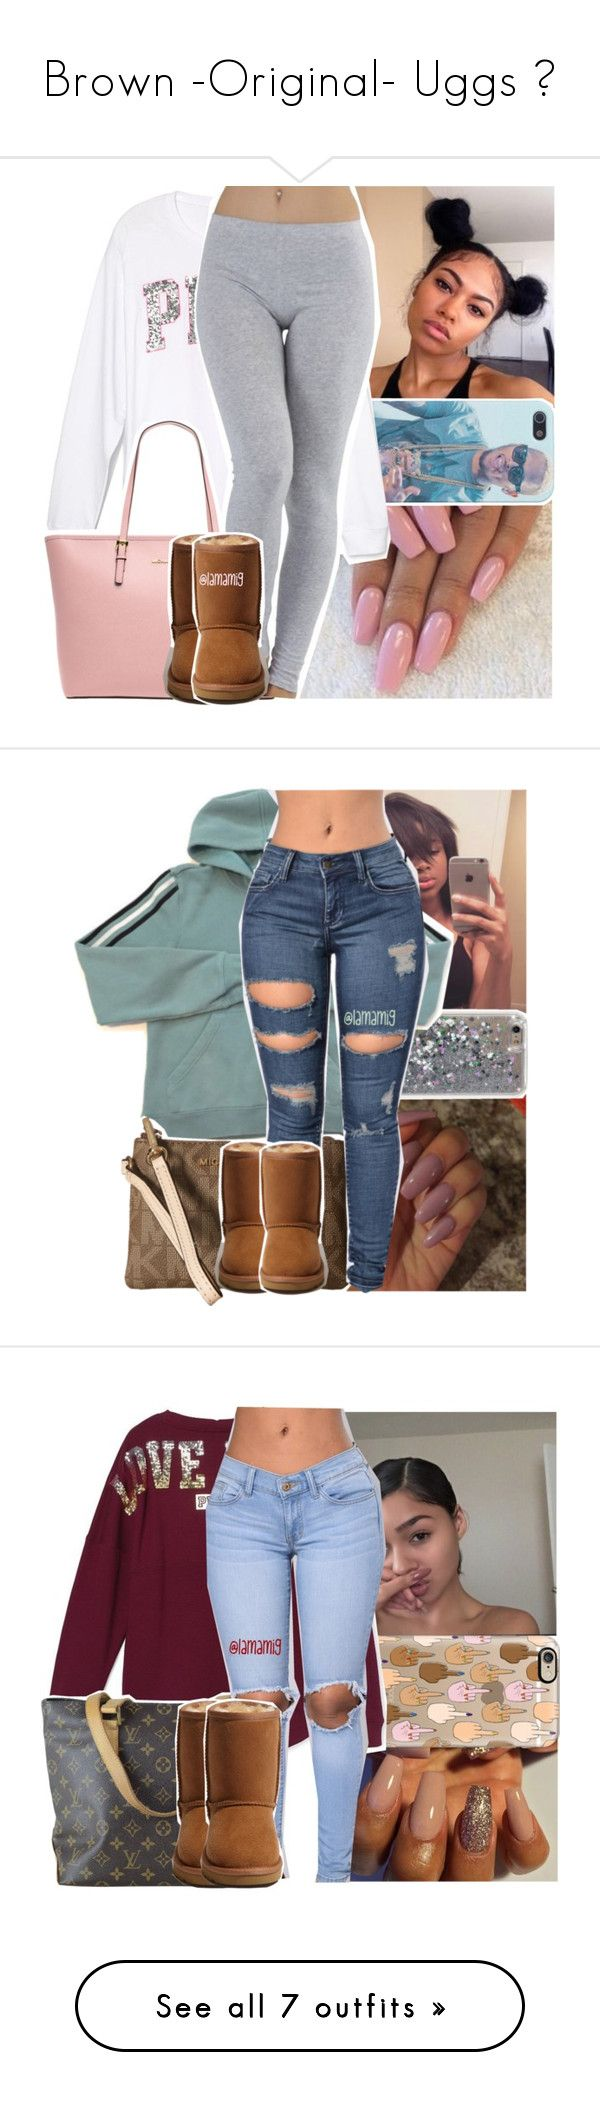 """""""Brown -Original- Uggs 💛"""" by prinxcess-adrii ❤ liked on Polyvore featuring MICHAEL Michael Kors, UGG Australia, adidas, Casetify, Victoria's Secret, Louis Vuitton, H&M, MCM, MANGO and Rolex"""